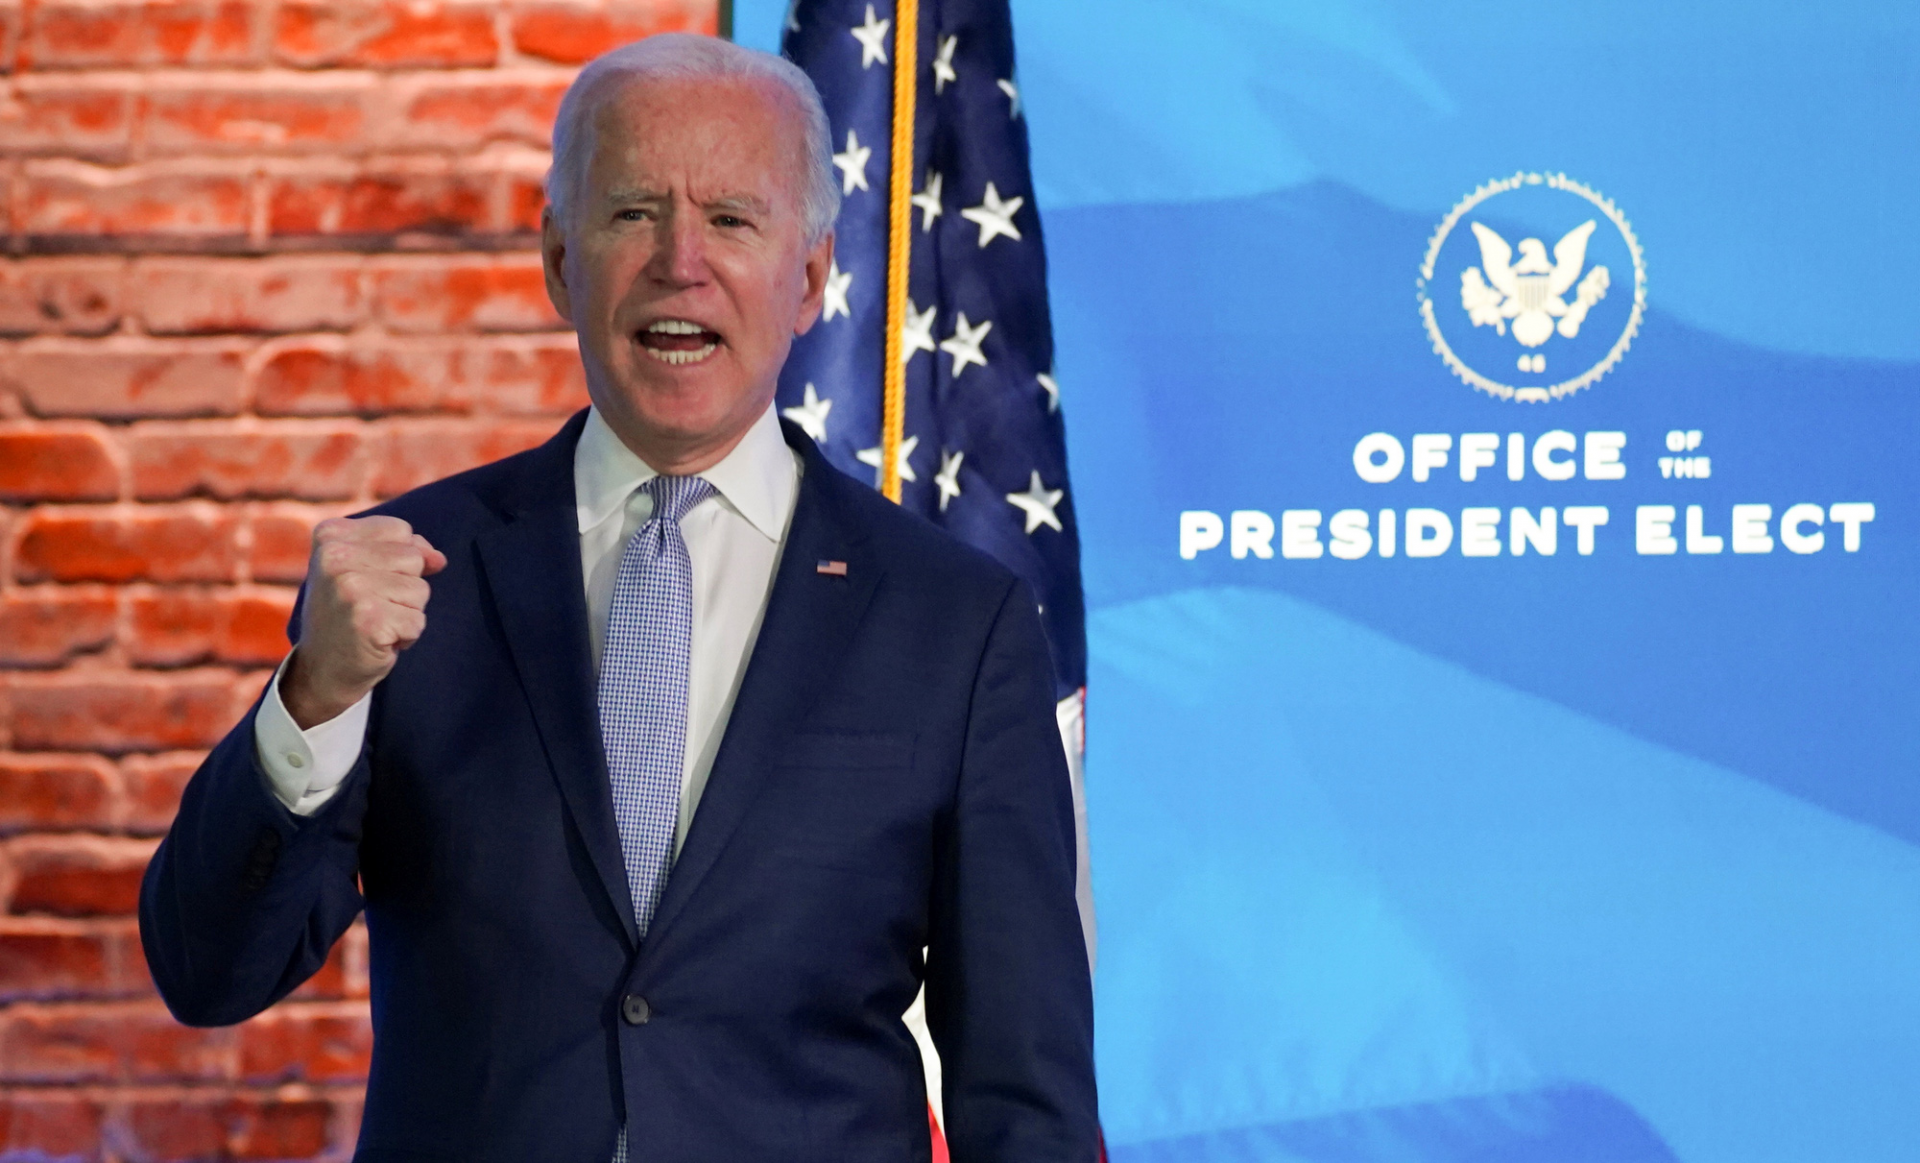 biden is certified victory by us congress trump pledges orderly transition on jan 20